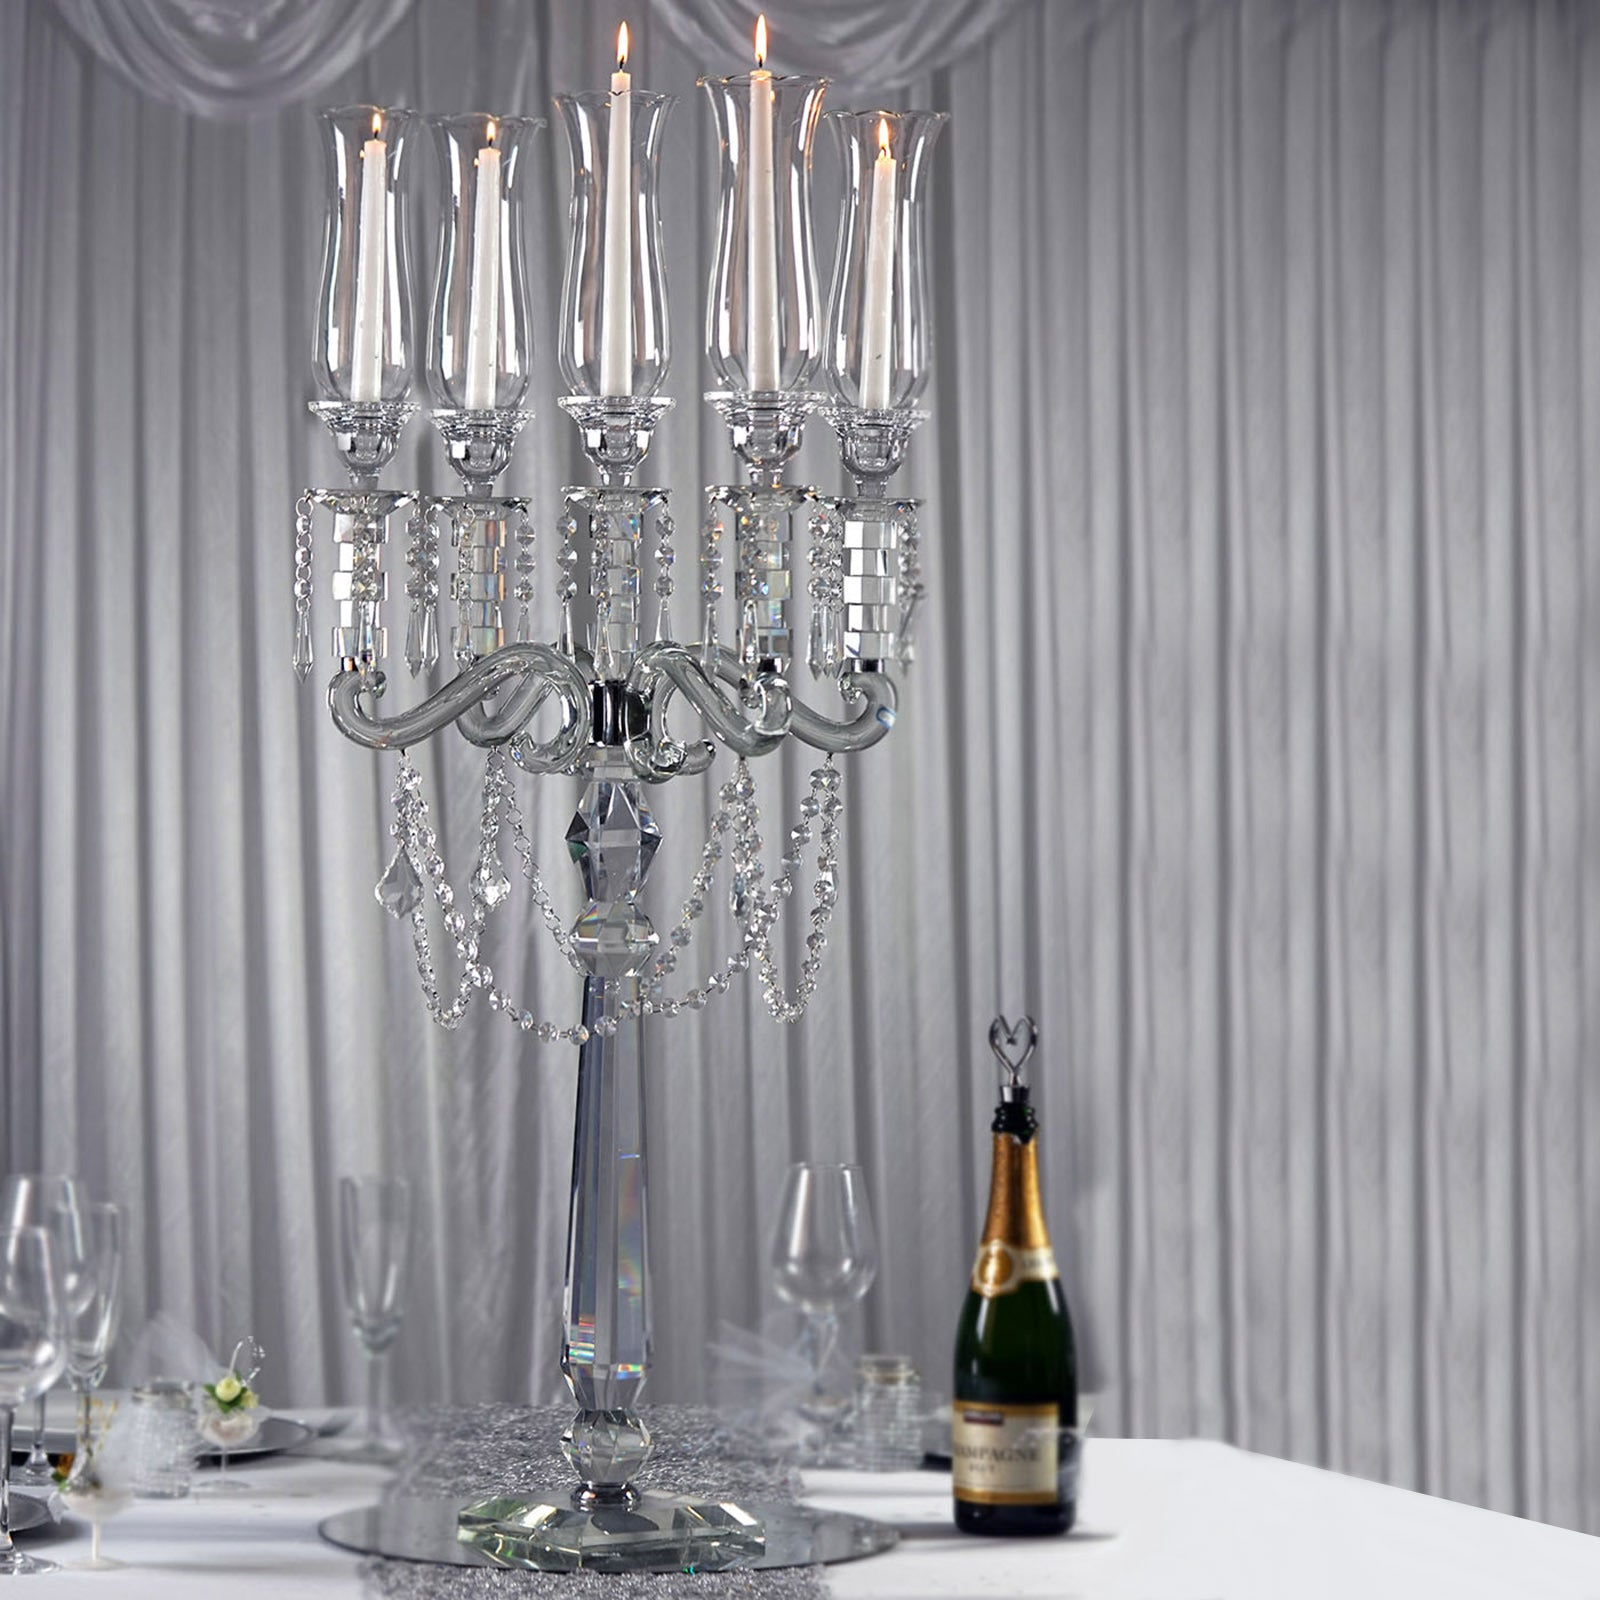 39 Tall 5 Arm Premium Hurricane Taper Crystal Glass Candle Holder Tableclothsfactory